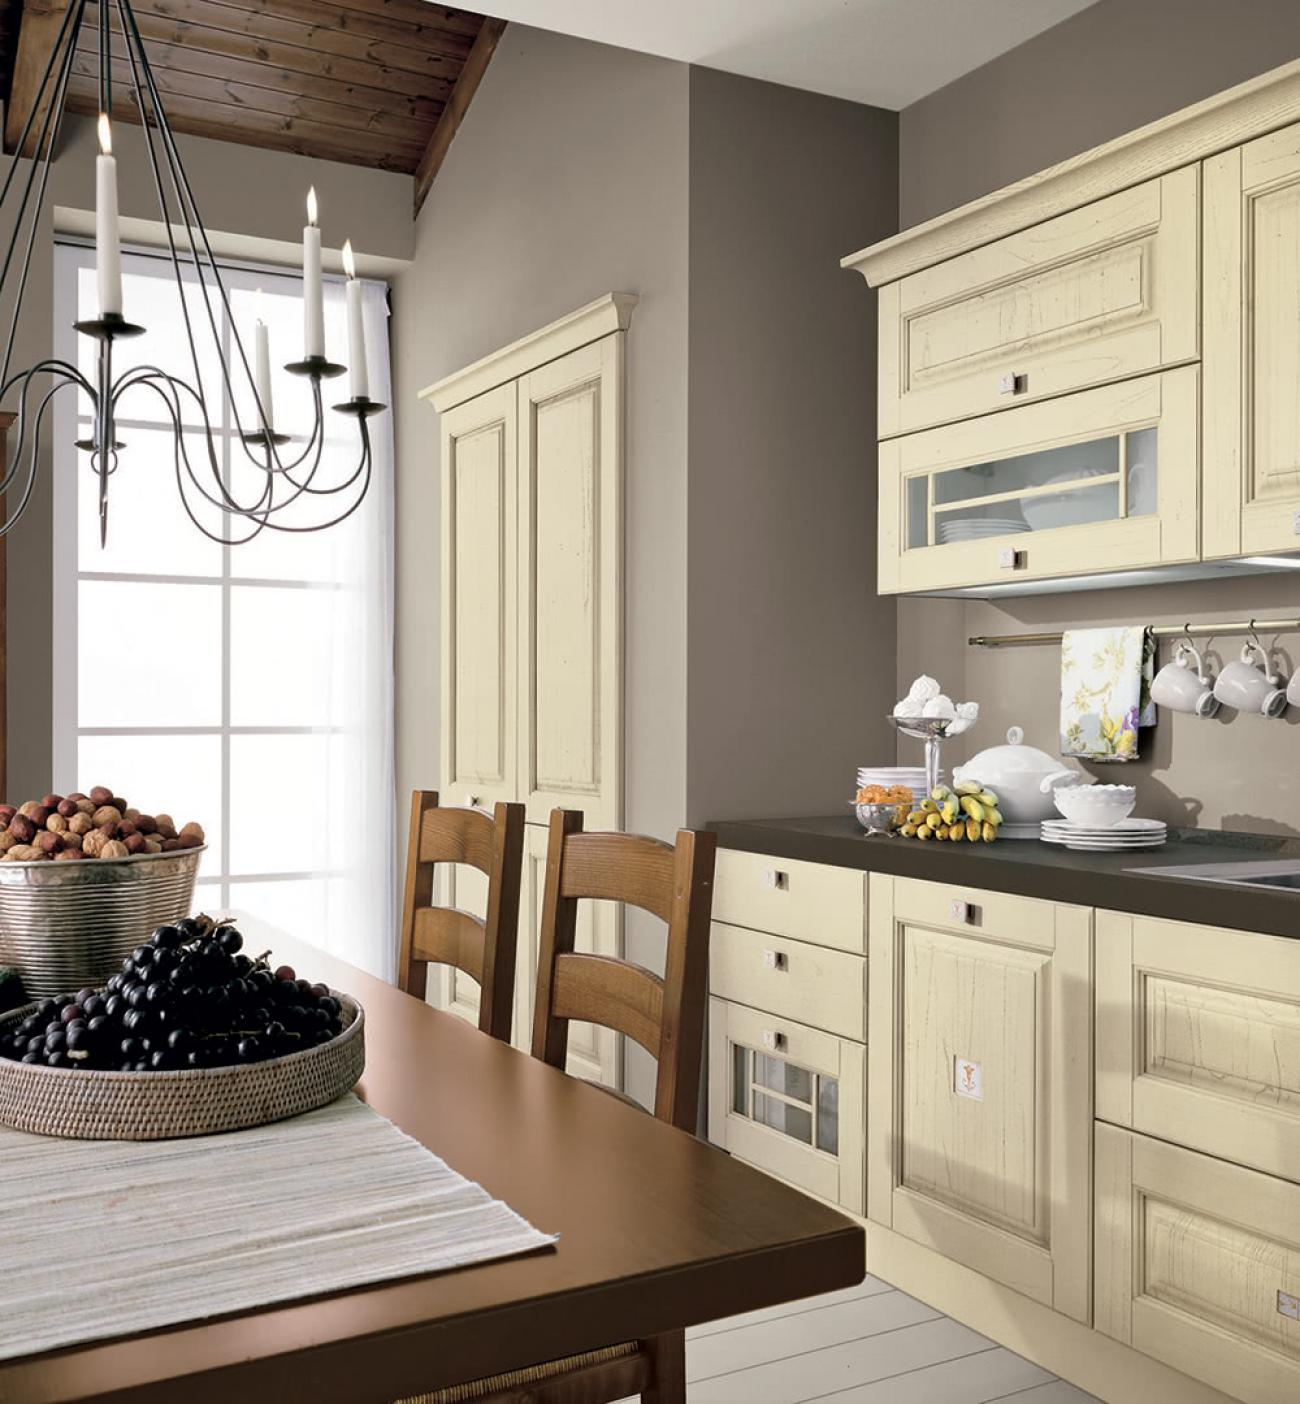 Classic Kitchens - Laura - 09